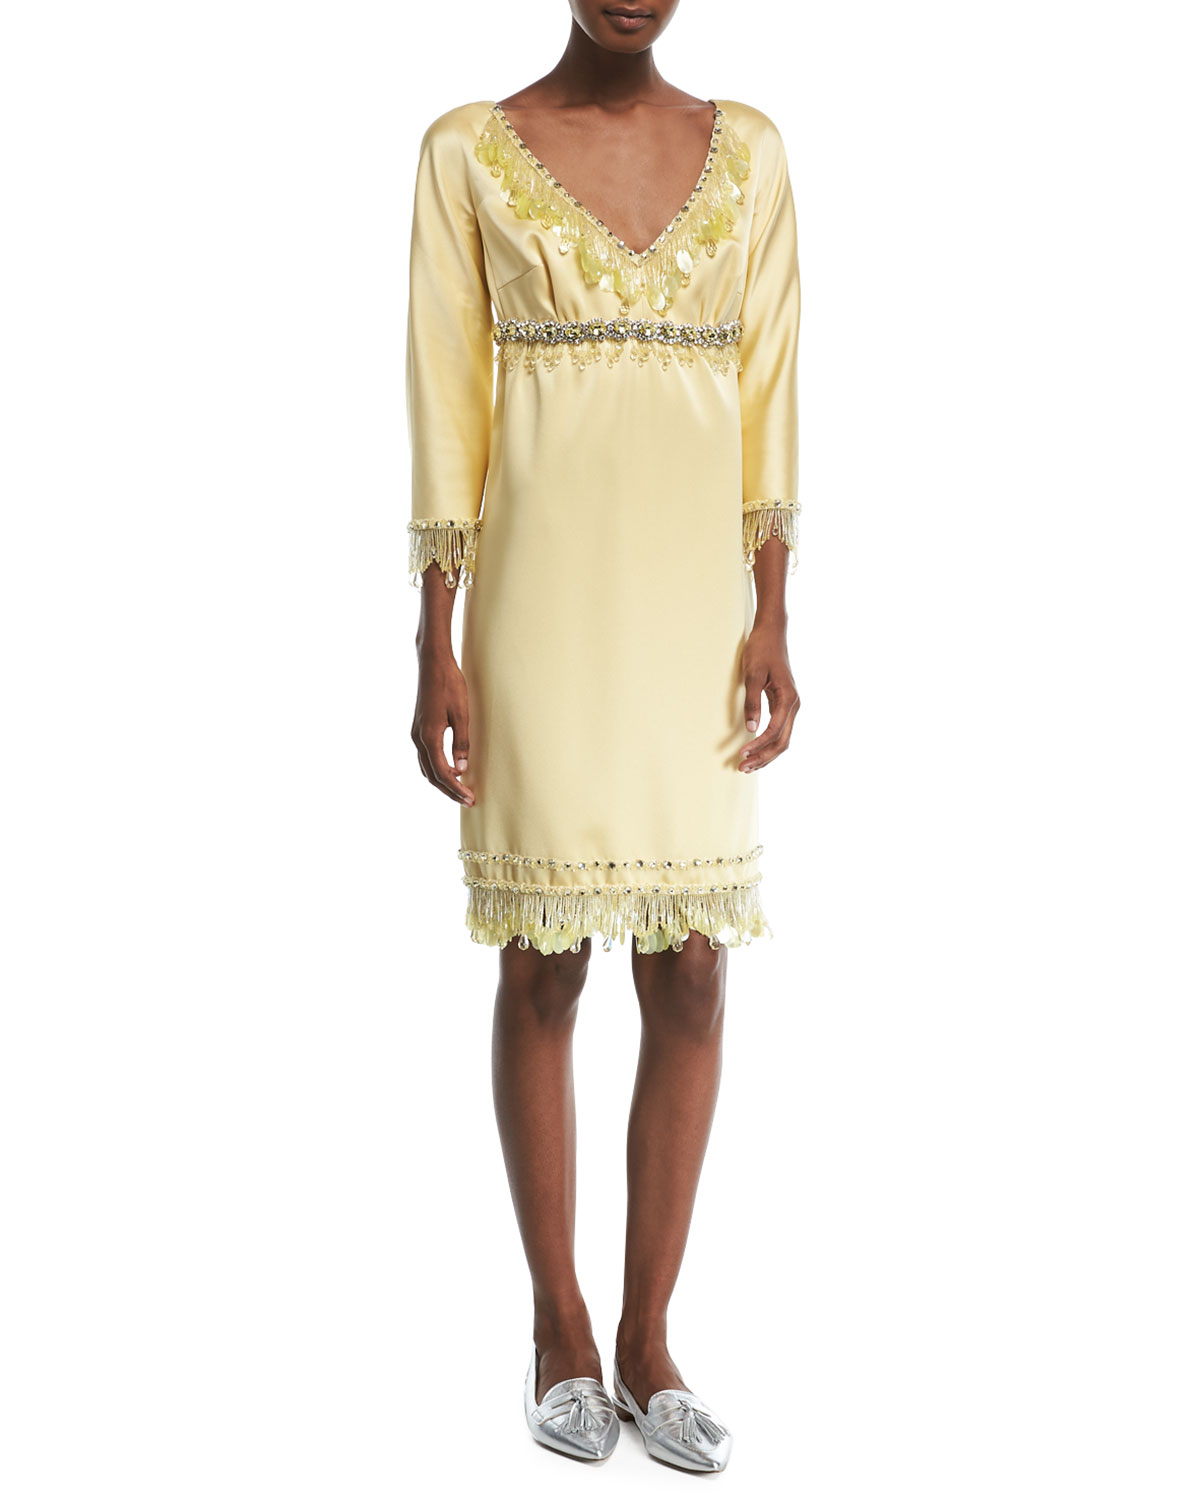 3dac321906c marc jacobs cocktail dresses for women - Buy best women s marc ...